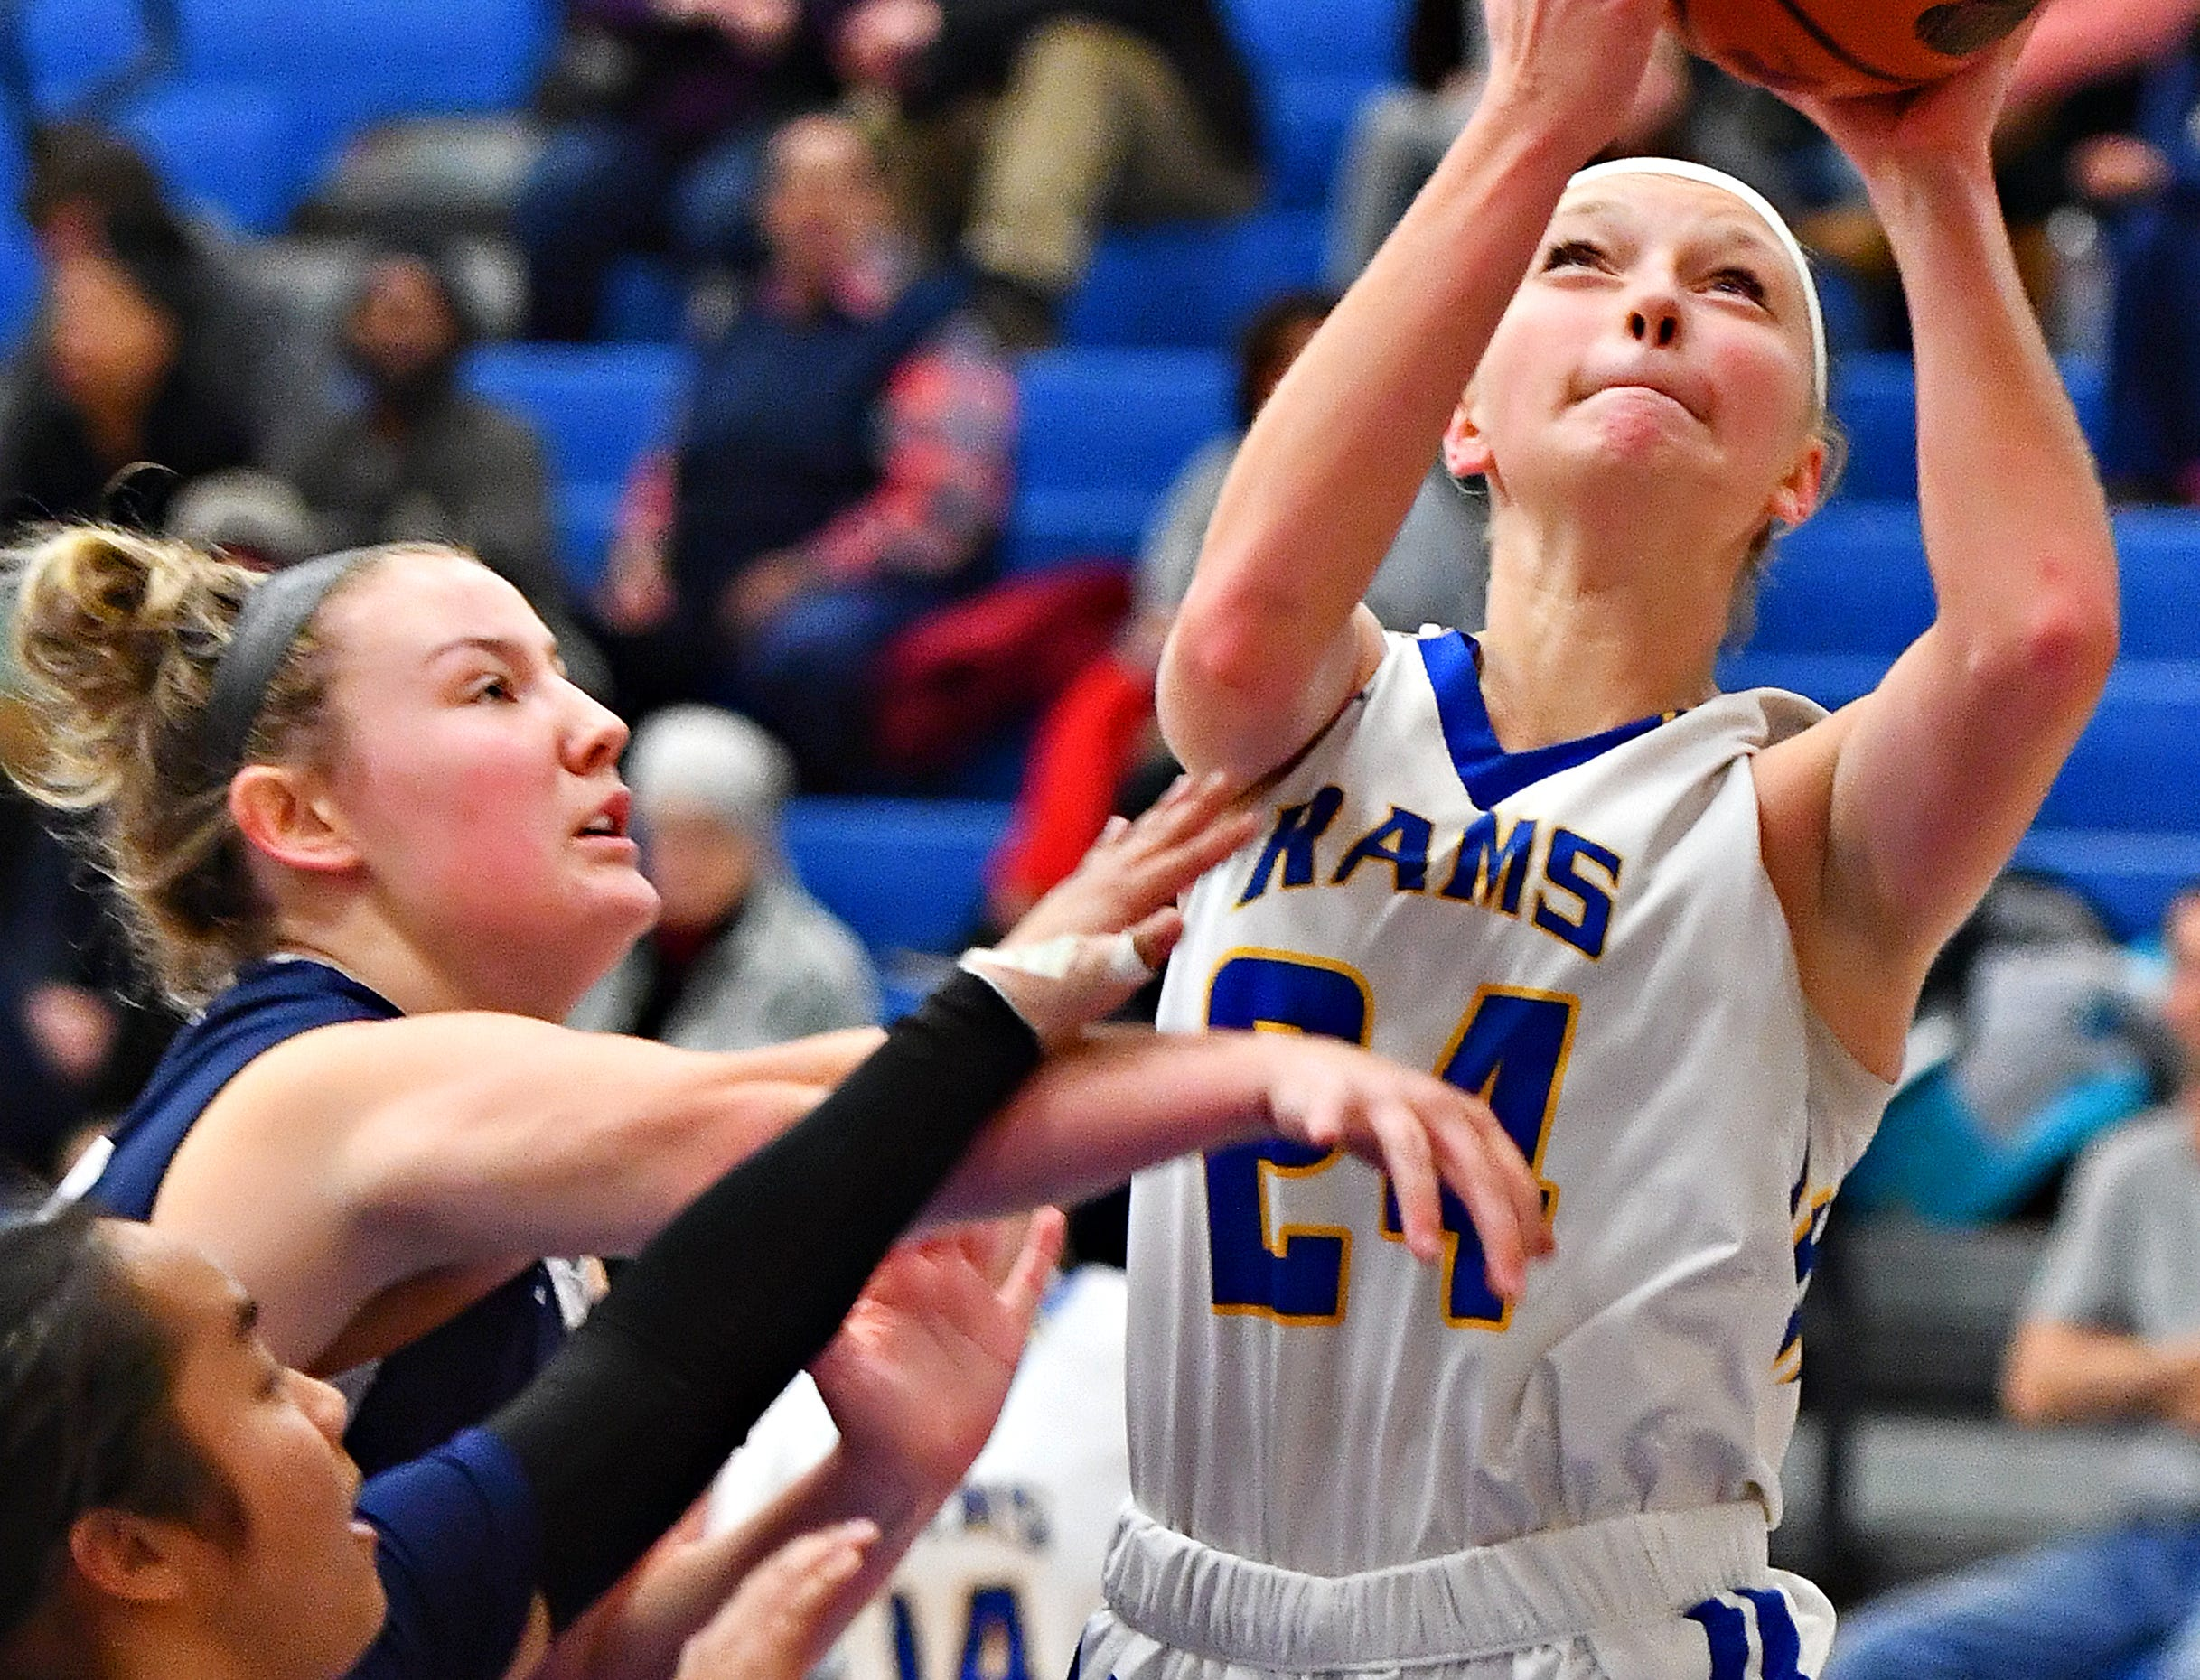 Kennard-Dale's Lexie Kopko takes the ball to the basket during girls' basketball action against Camp Hill at Kennard-Dale High School in Fawn Grove, Wednesday, Dec. 12, 2018. Kennard-Dale would win the game 47-28. Dawn J. Sagert photo